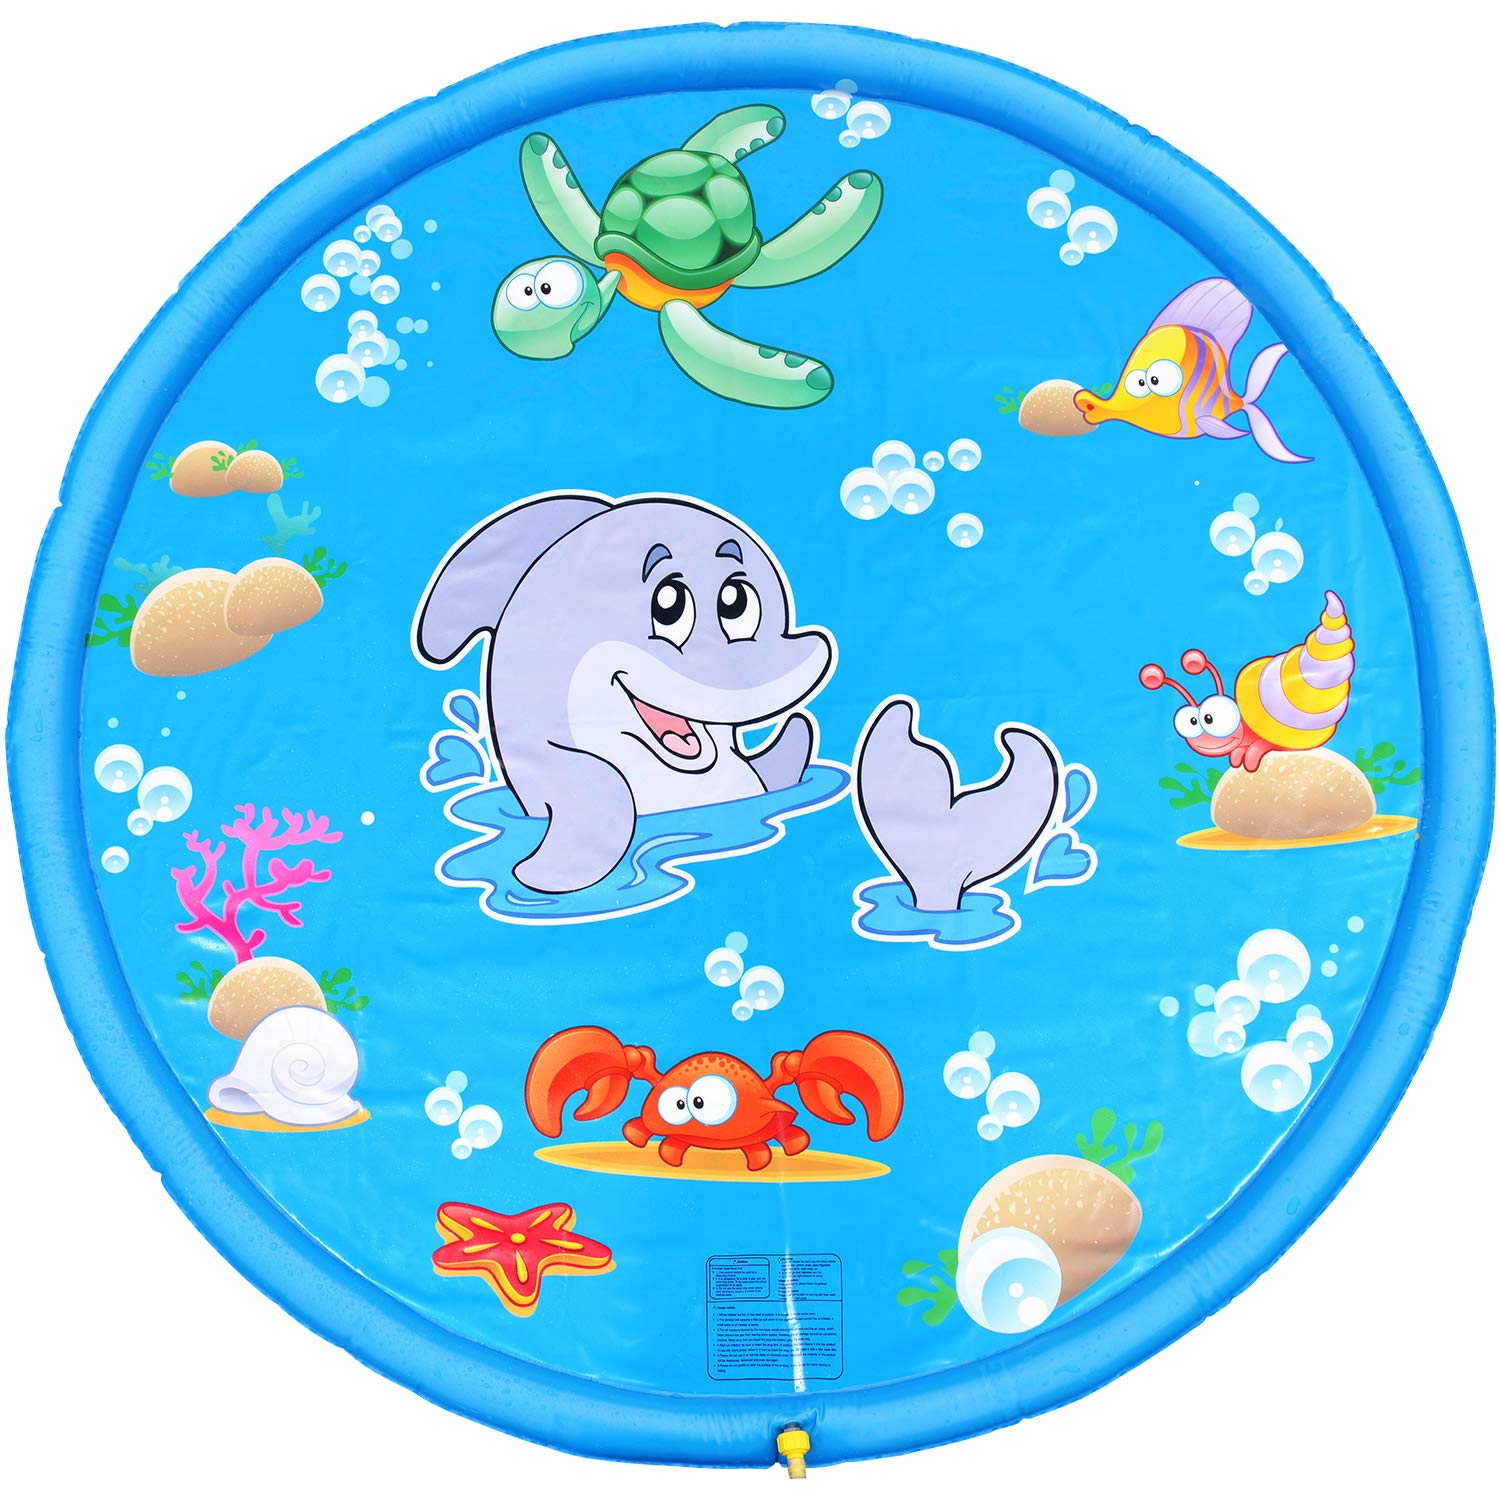 BATTOP Splash Play Mat 68in-Diameter Outdoor Water Play Sprinklers Summer Fun Backyard Play for Infants Toddlers and Kids(Blue) by BATTOP (Image #1)